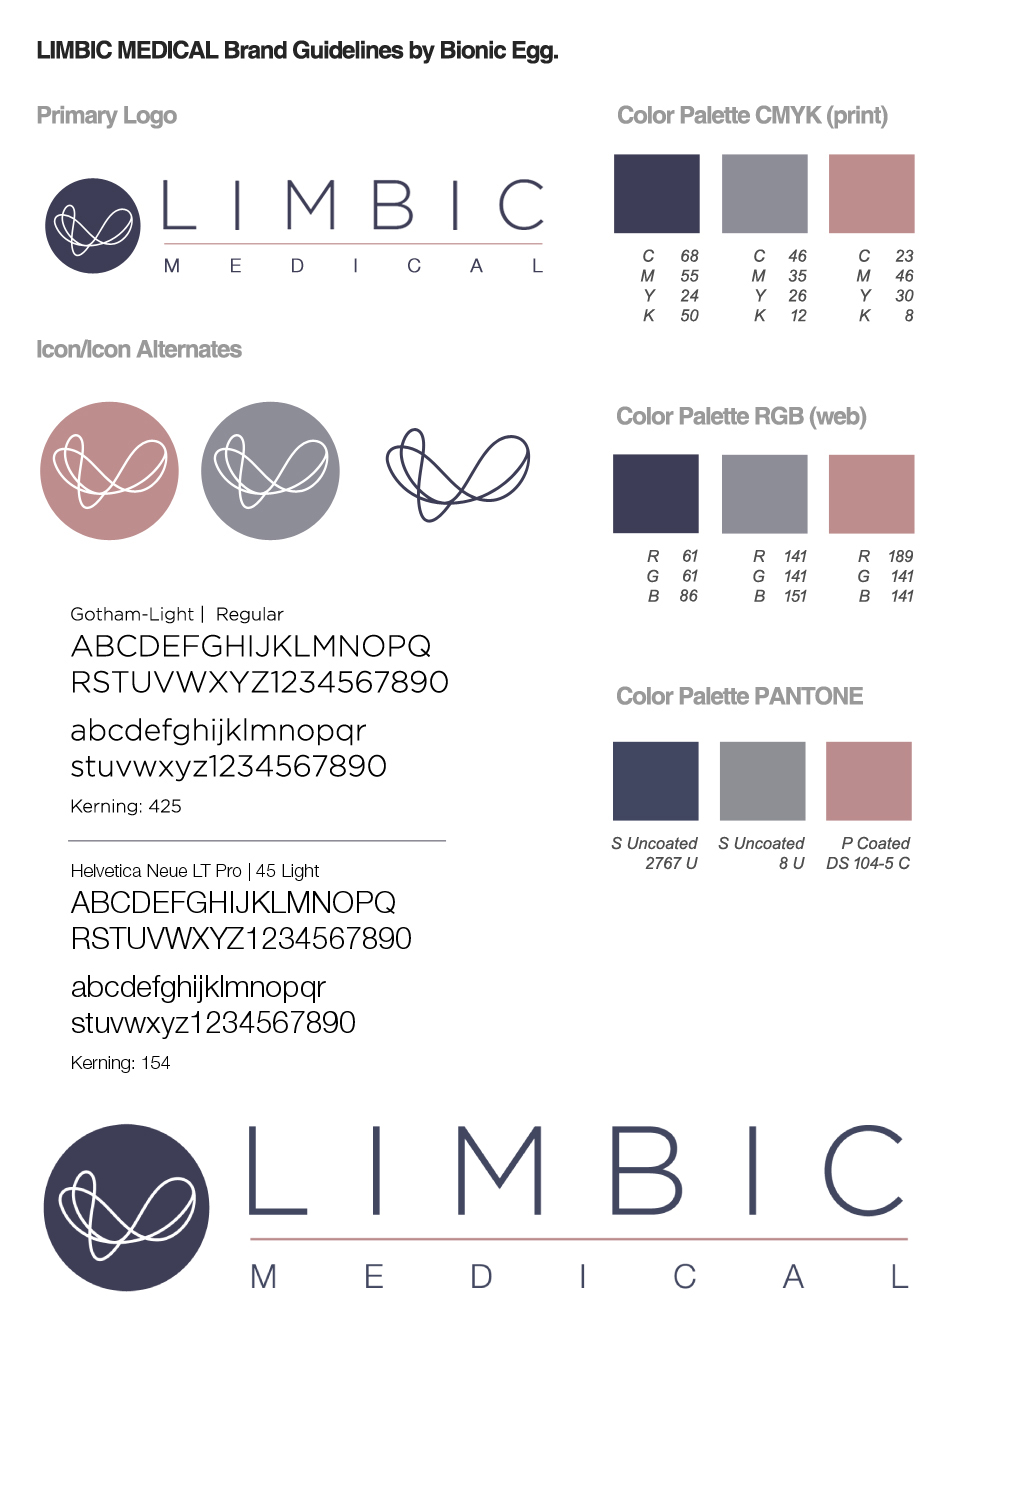 LIMBIC-MEDICAL-Brand-Guidel